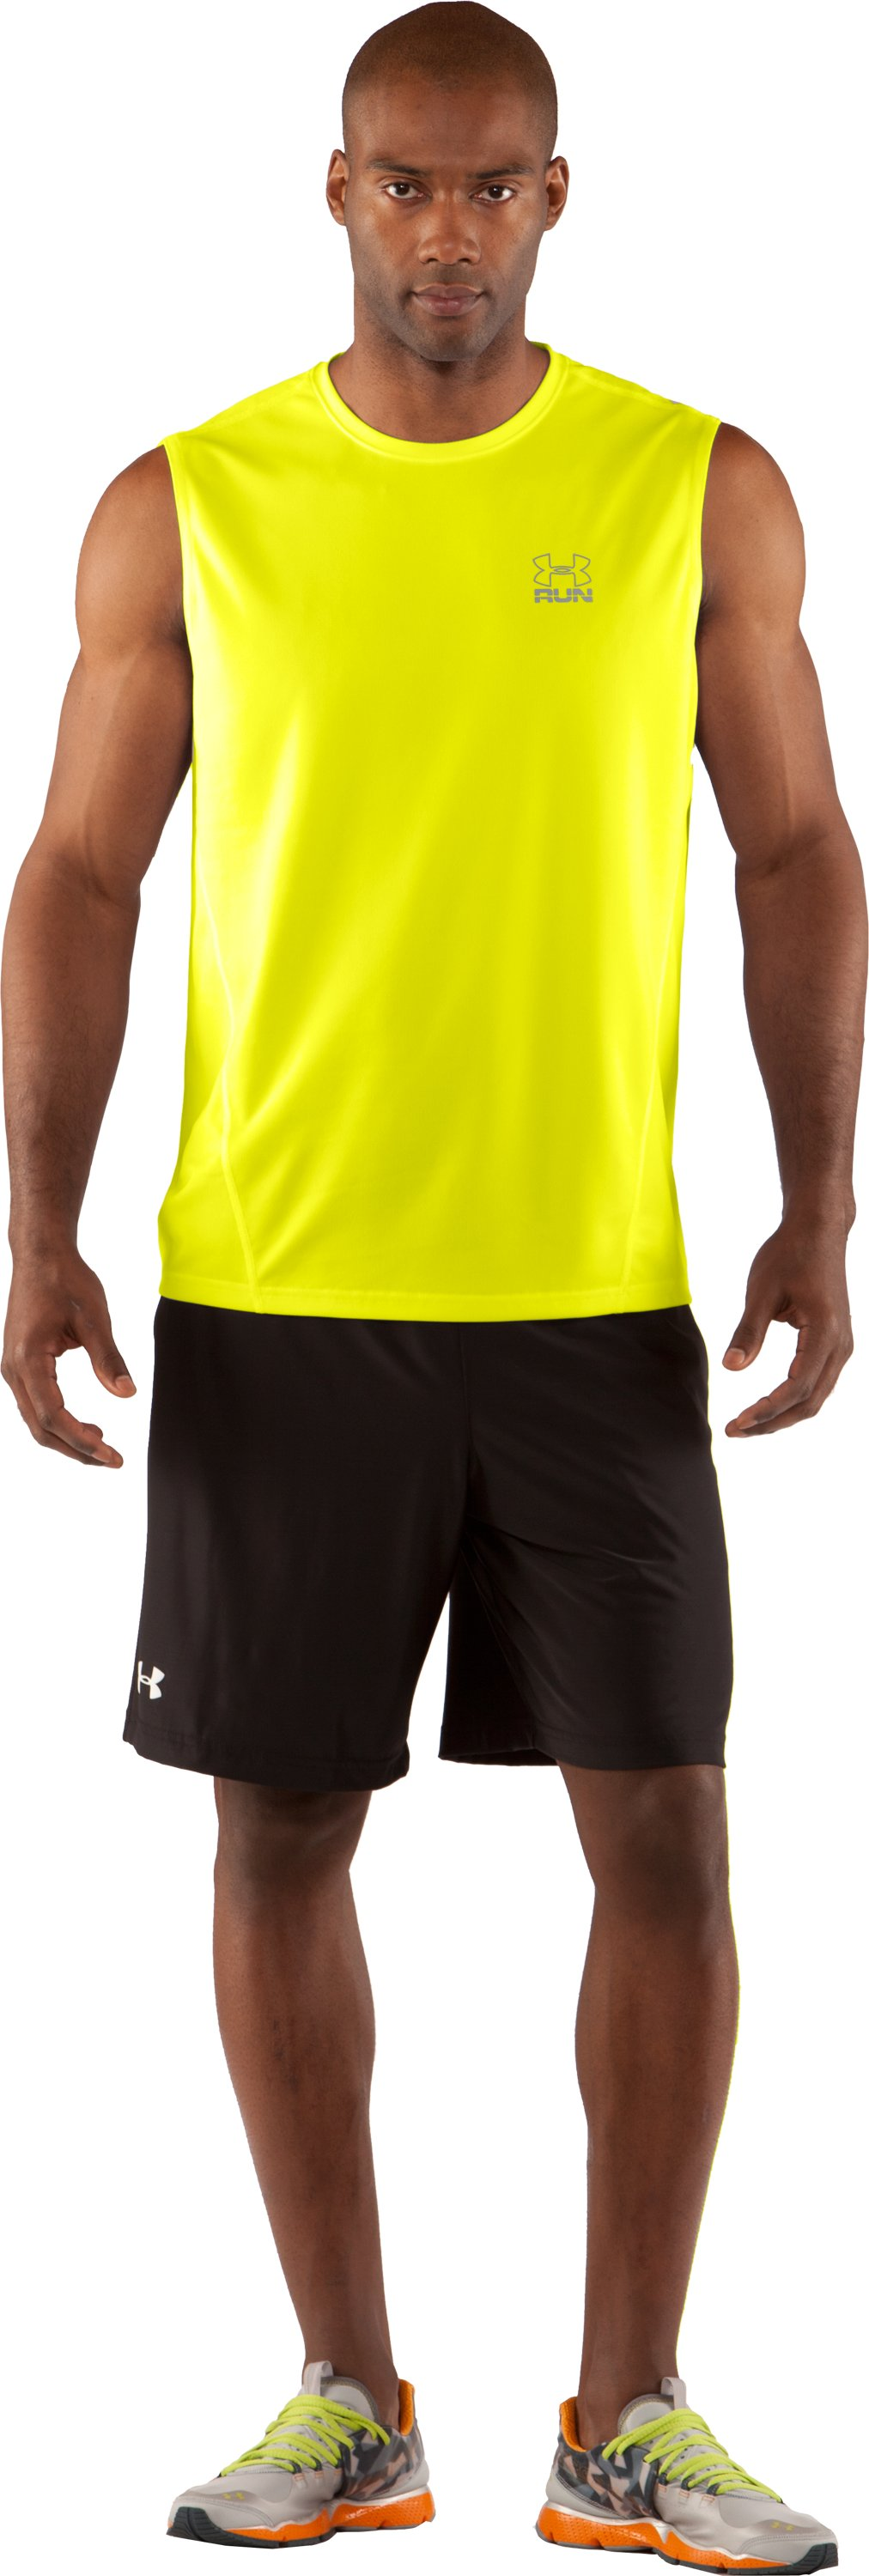 Men's UA Run HeatGear® Sleeveless T-Shirt, High-Vis Yellow, Front